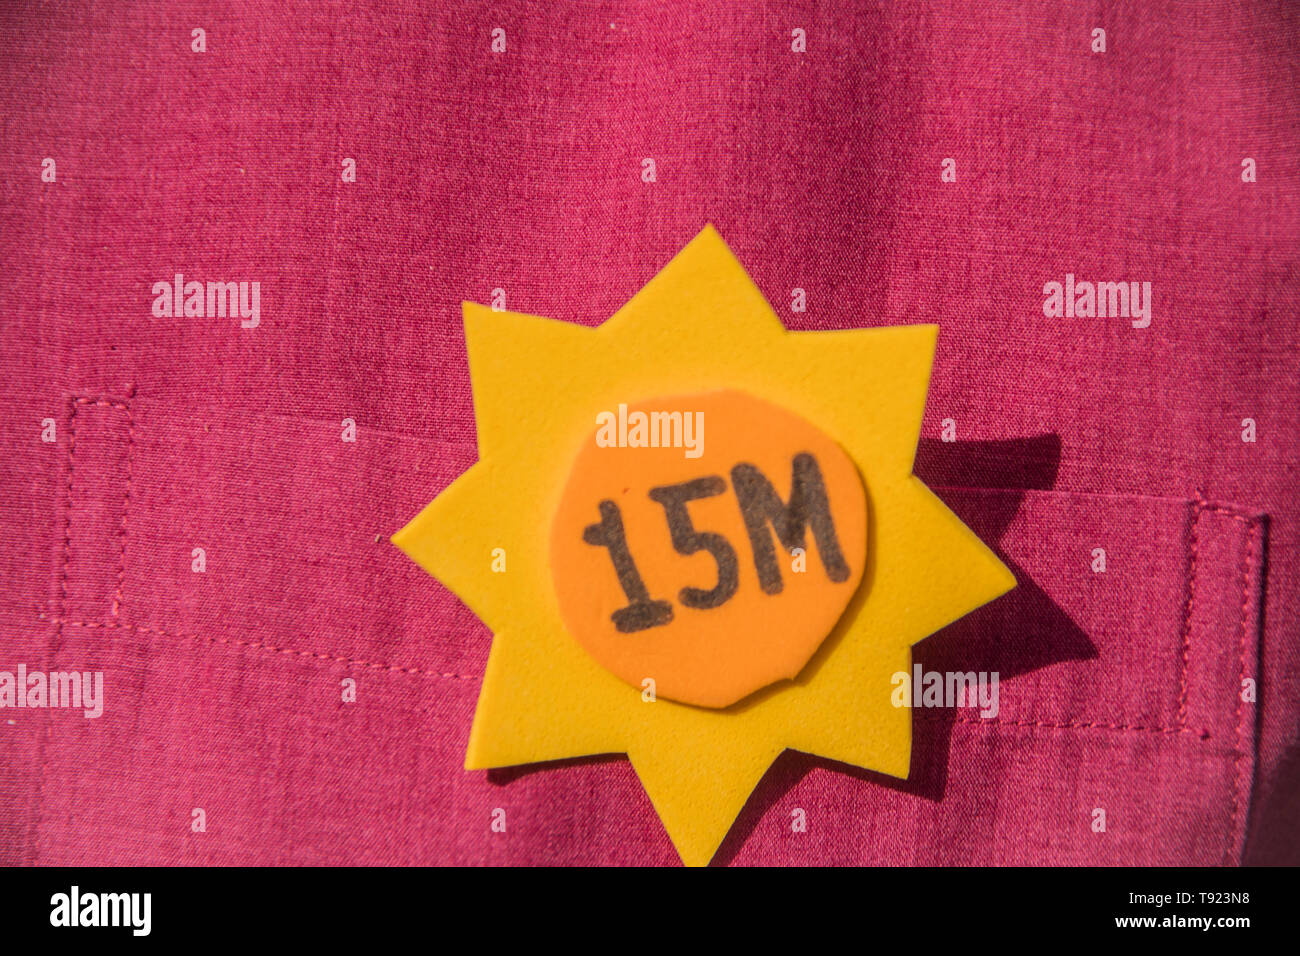 In the picture a badge of 15m in a t shirt. 8 years celebration of the political project in Madrid 15 m, the people of Madrid took from the streets a  - Stock Image